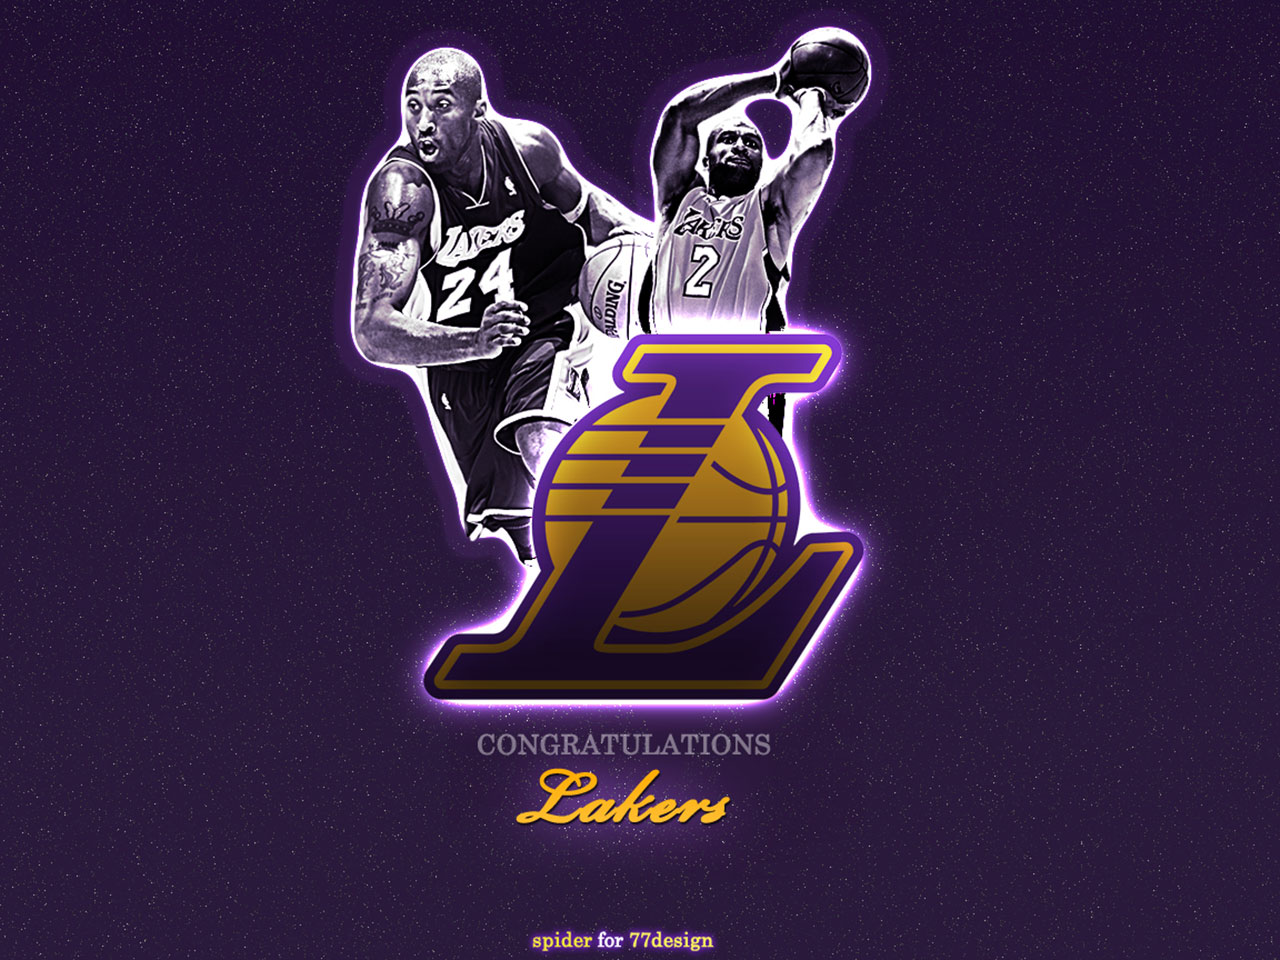 basketball wallpapers basketball wallpapers 2015 basketball wallpapers 1280x960